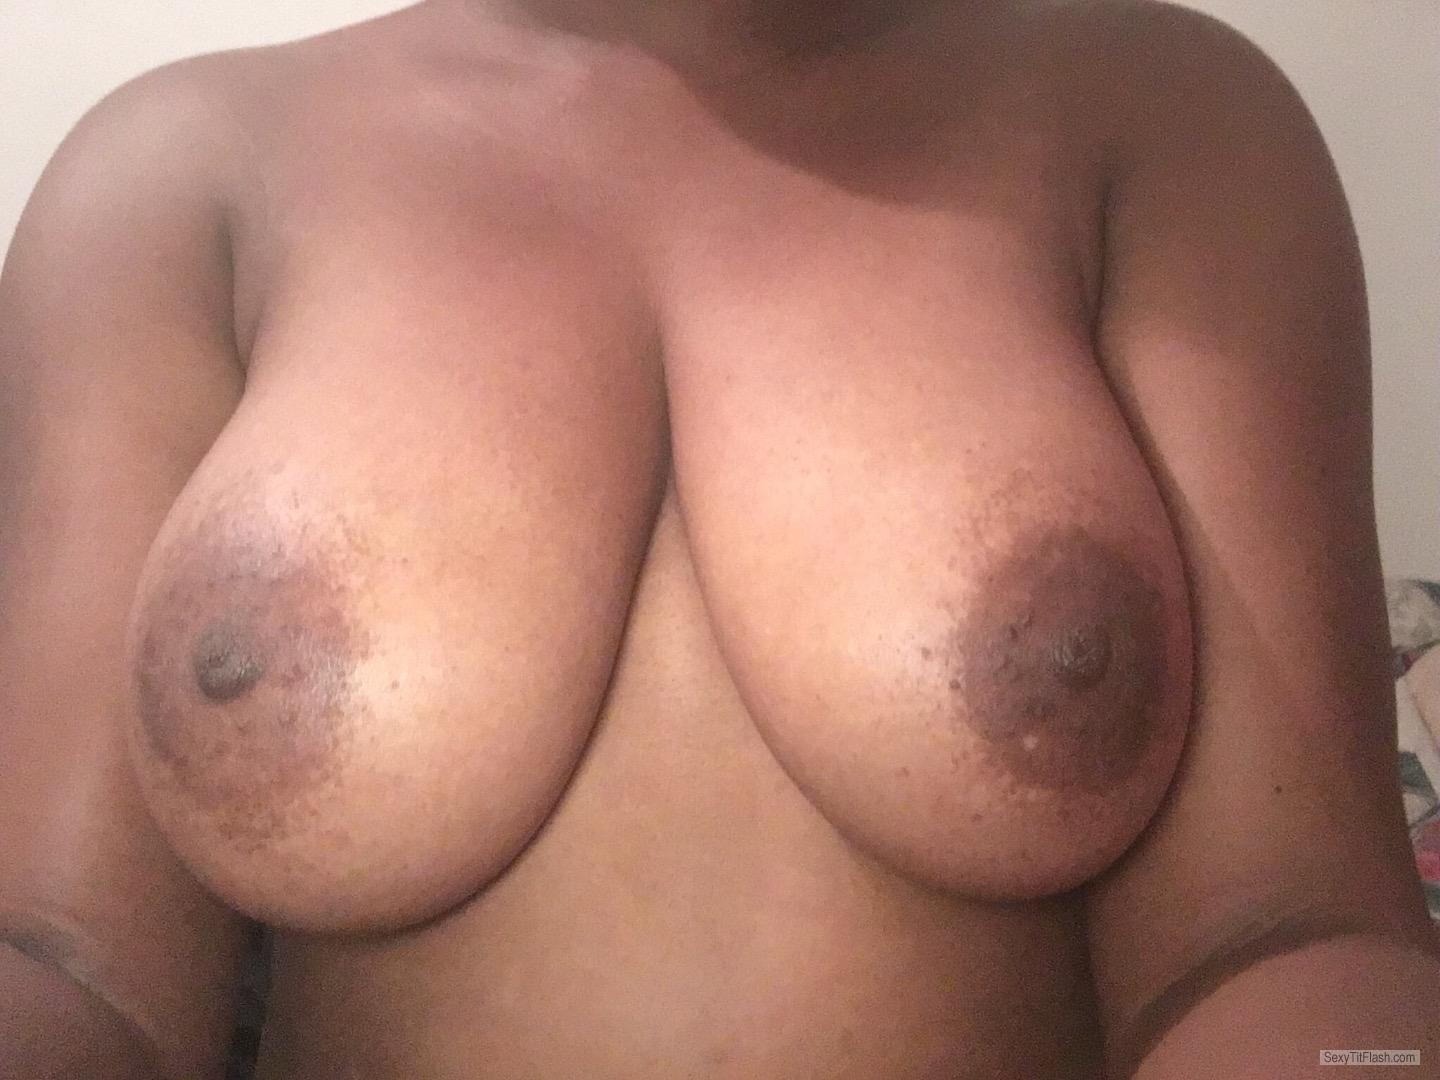 My Very small Tits Selfie by Juicy Boobs